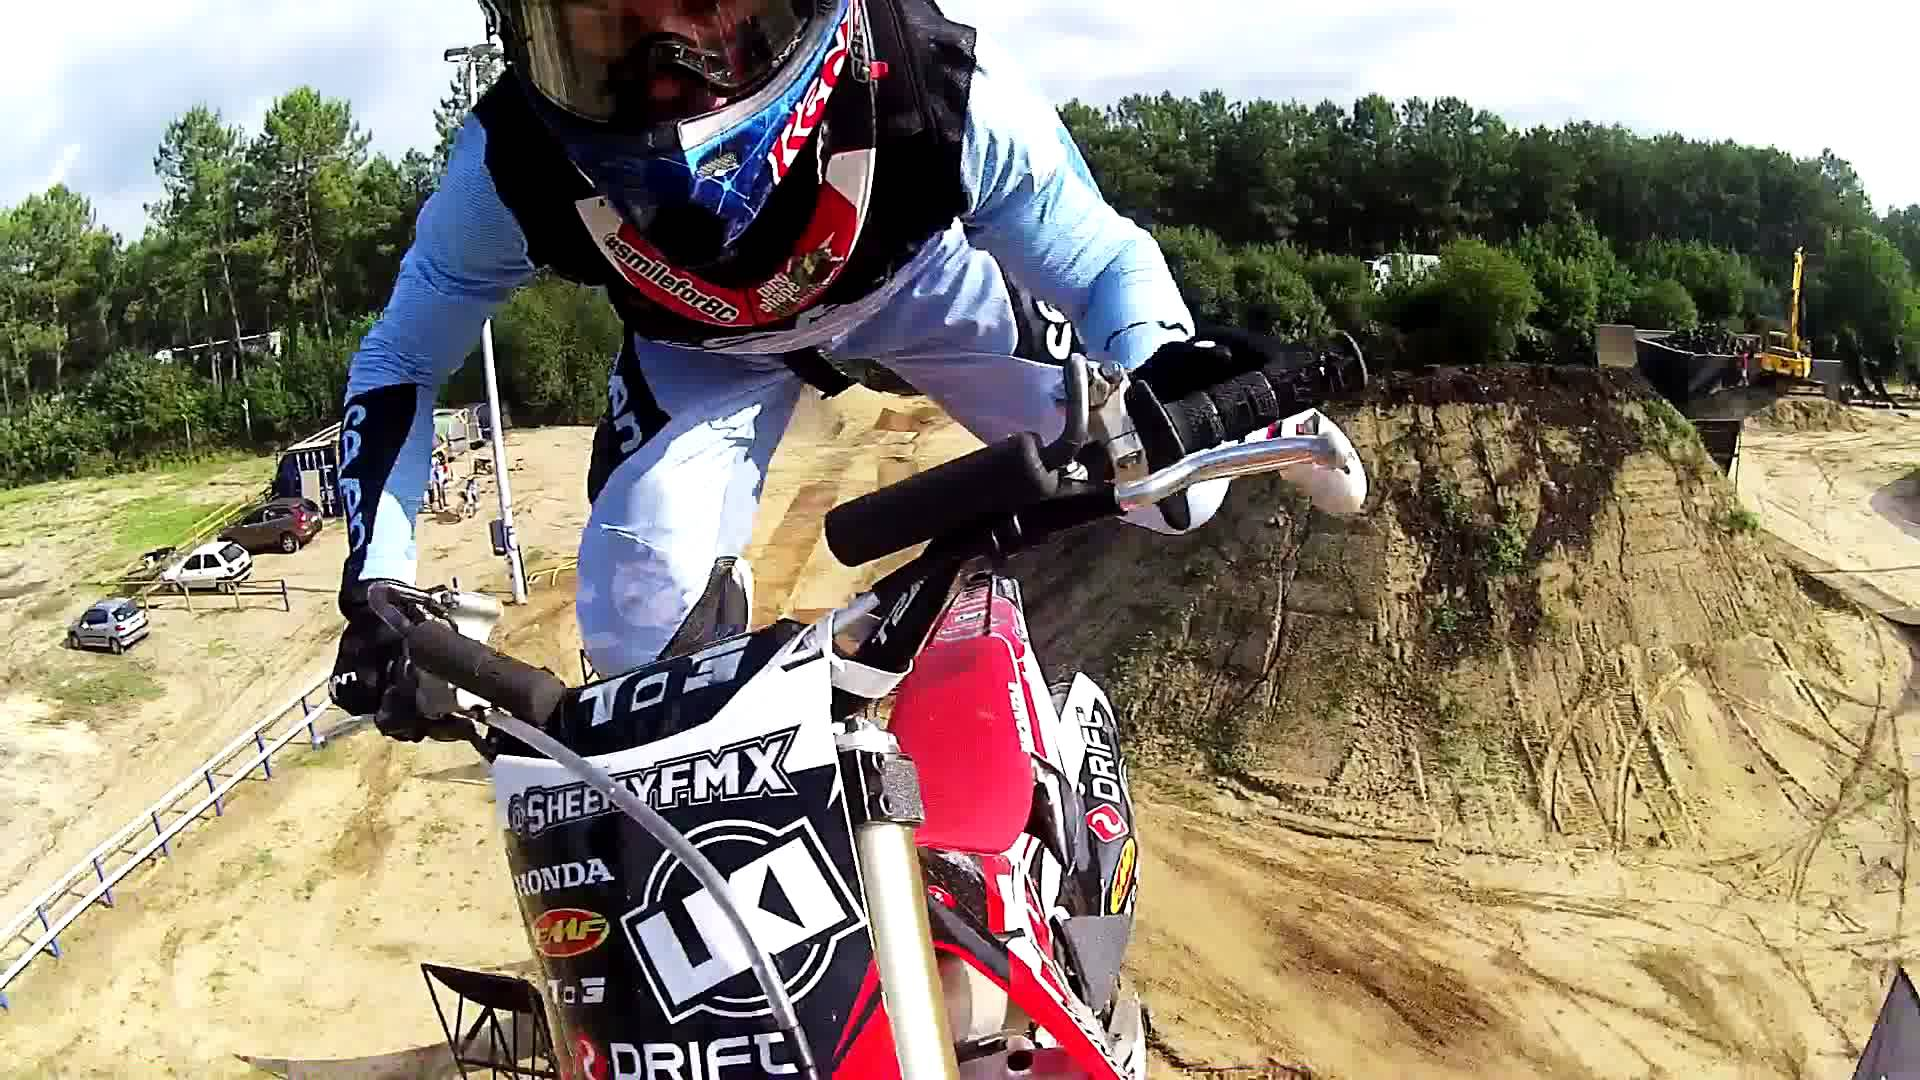 Drift Stealth 2: Josh Sheehan brings you unique FMX POV shots